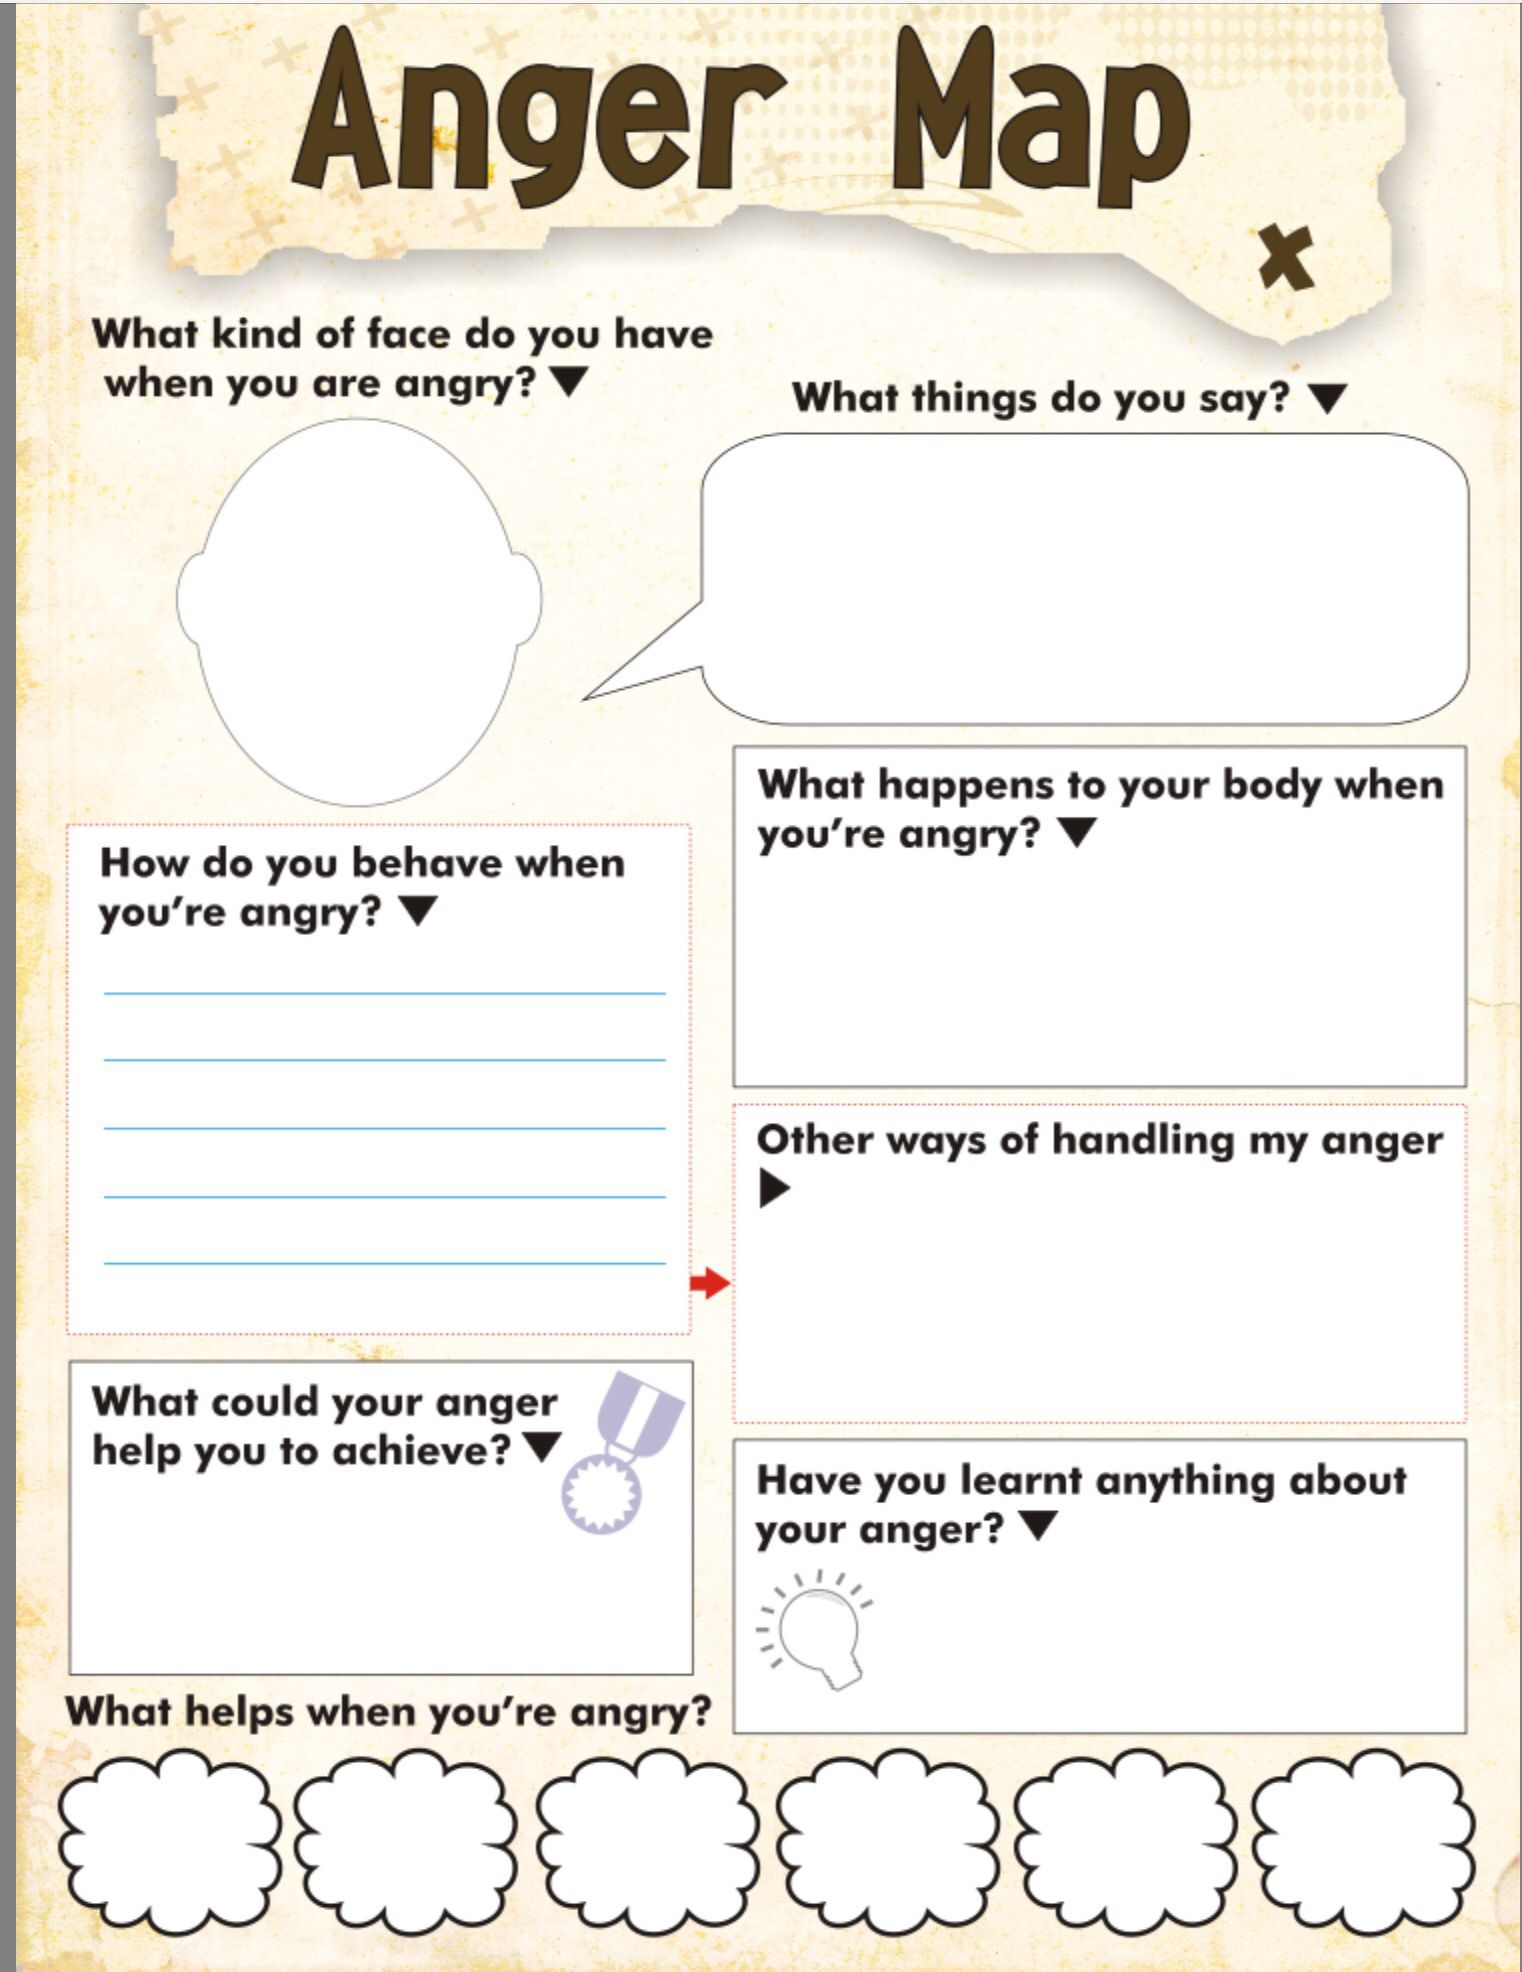 Anger map kids worksheet free printable – Anger Management Worksheets for Kids